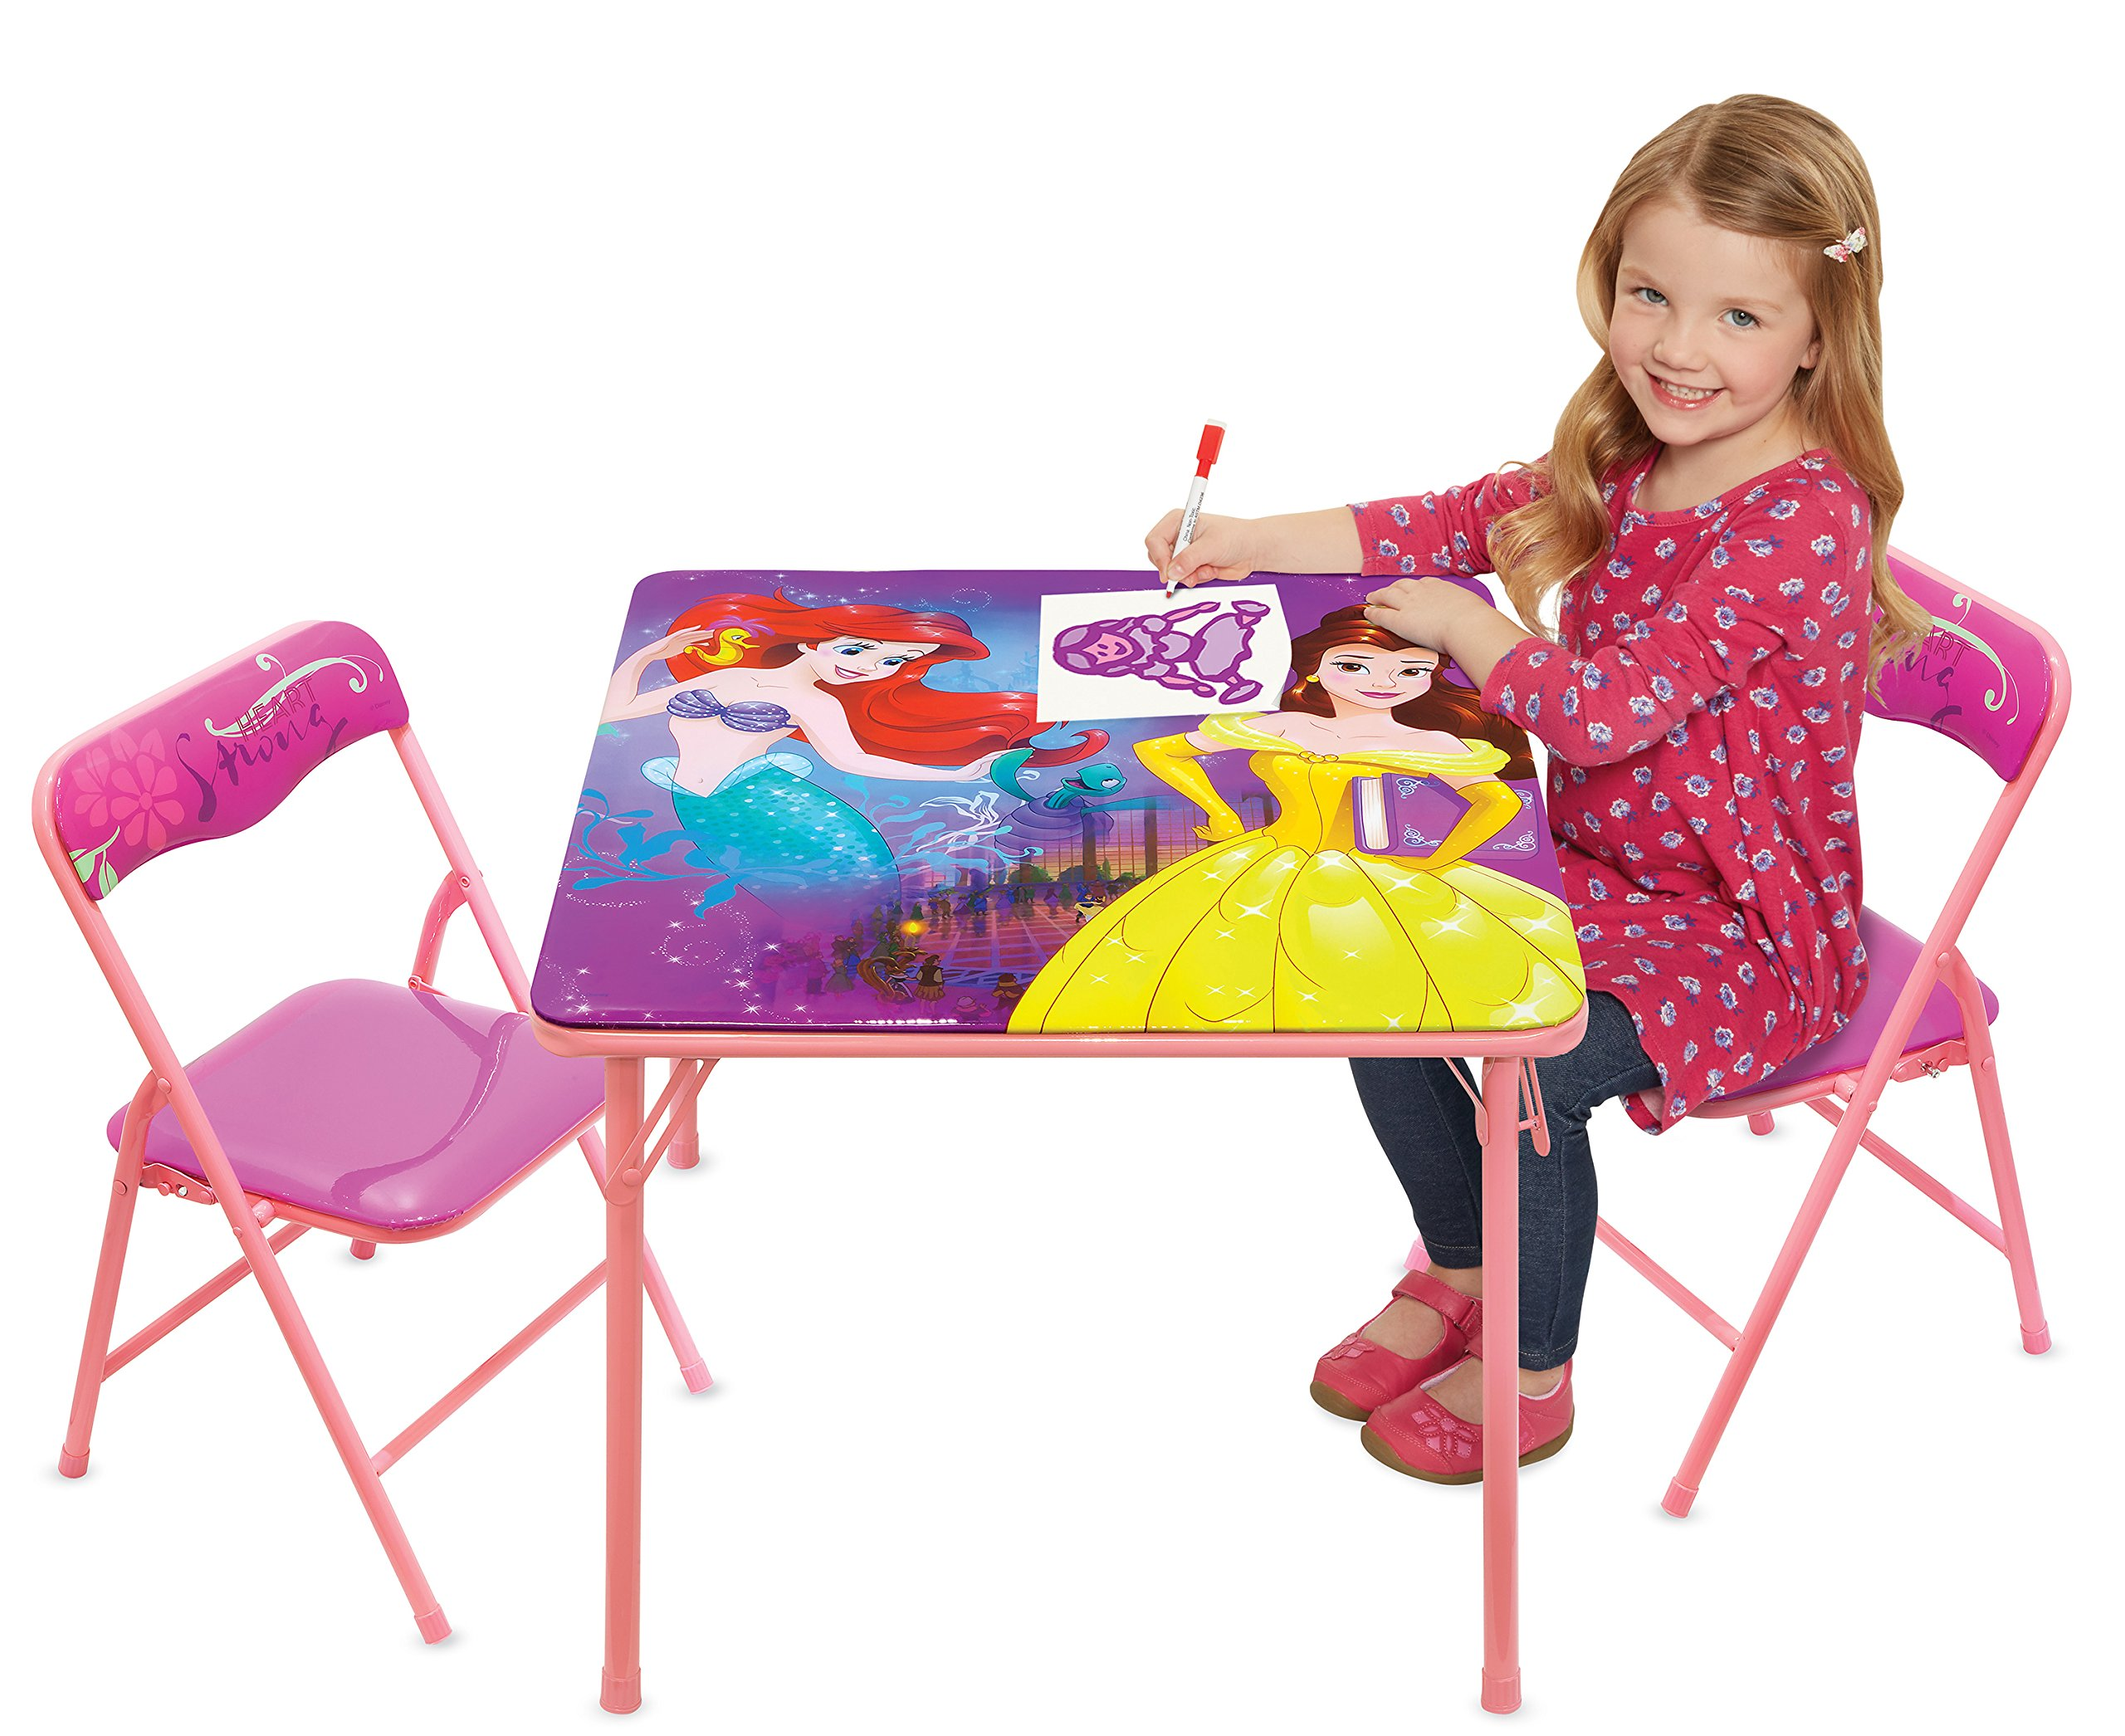 Disney Princess Heart Strong Activity Table Play Set with Two Chairs by Disney Princess